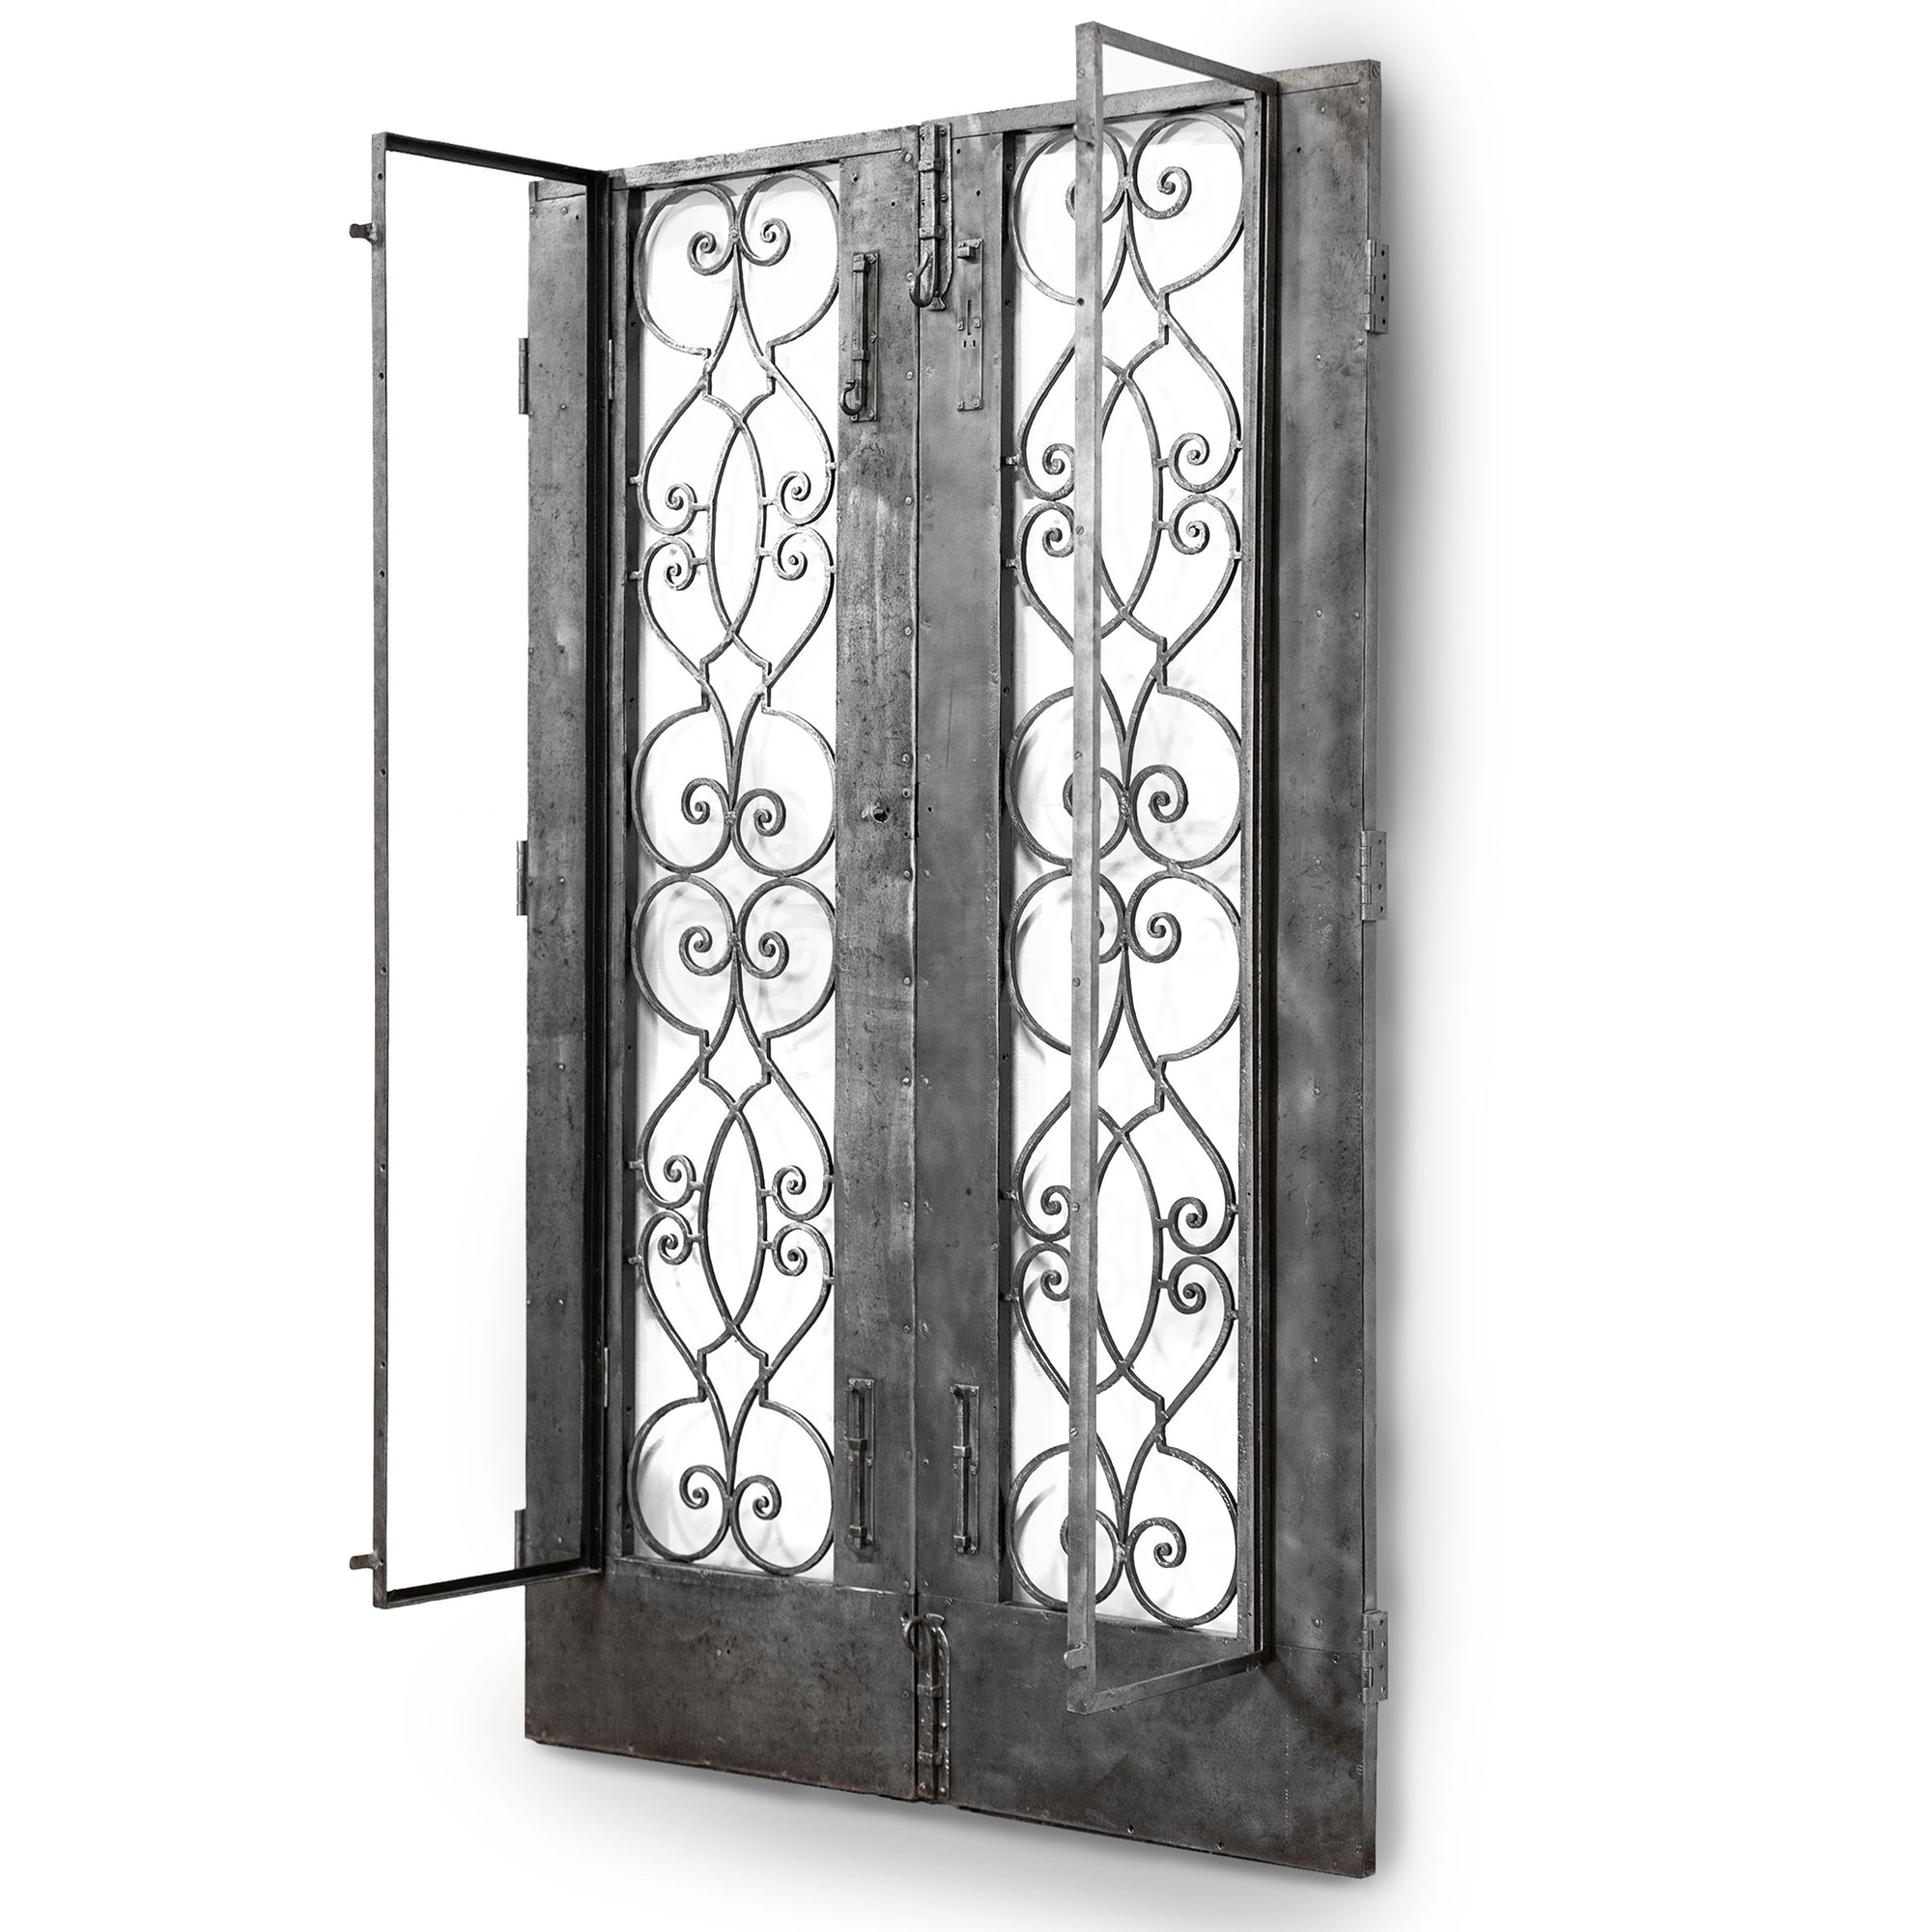 Antique pair of decorative iron doors